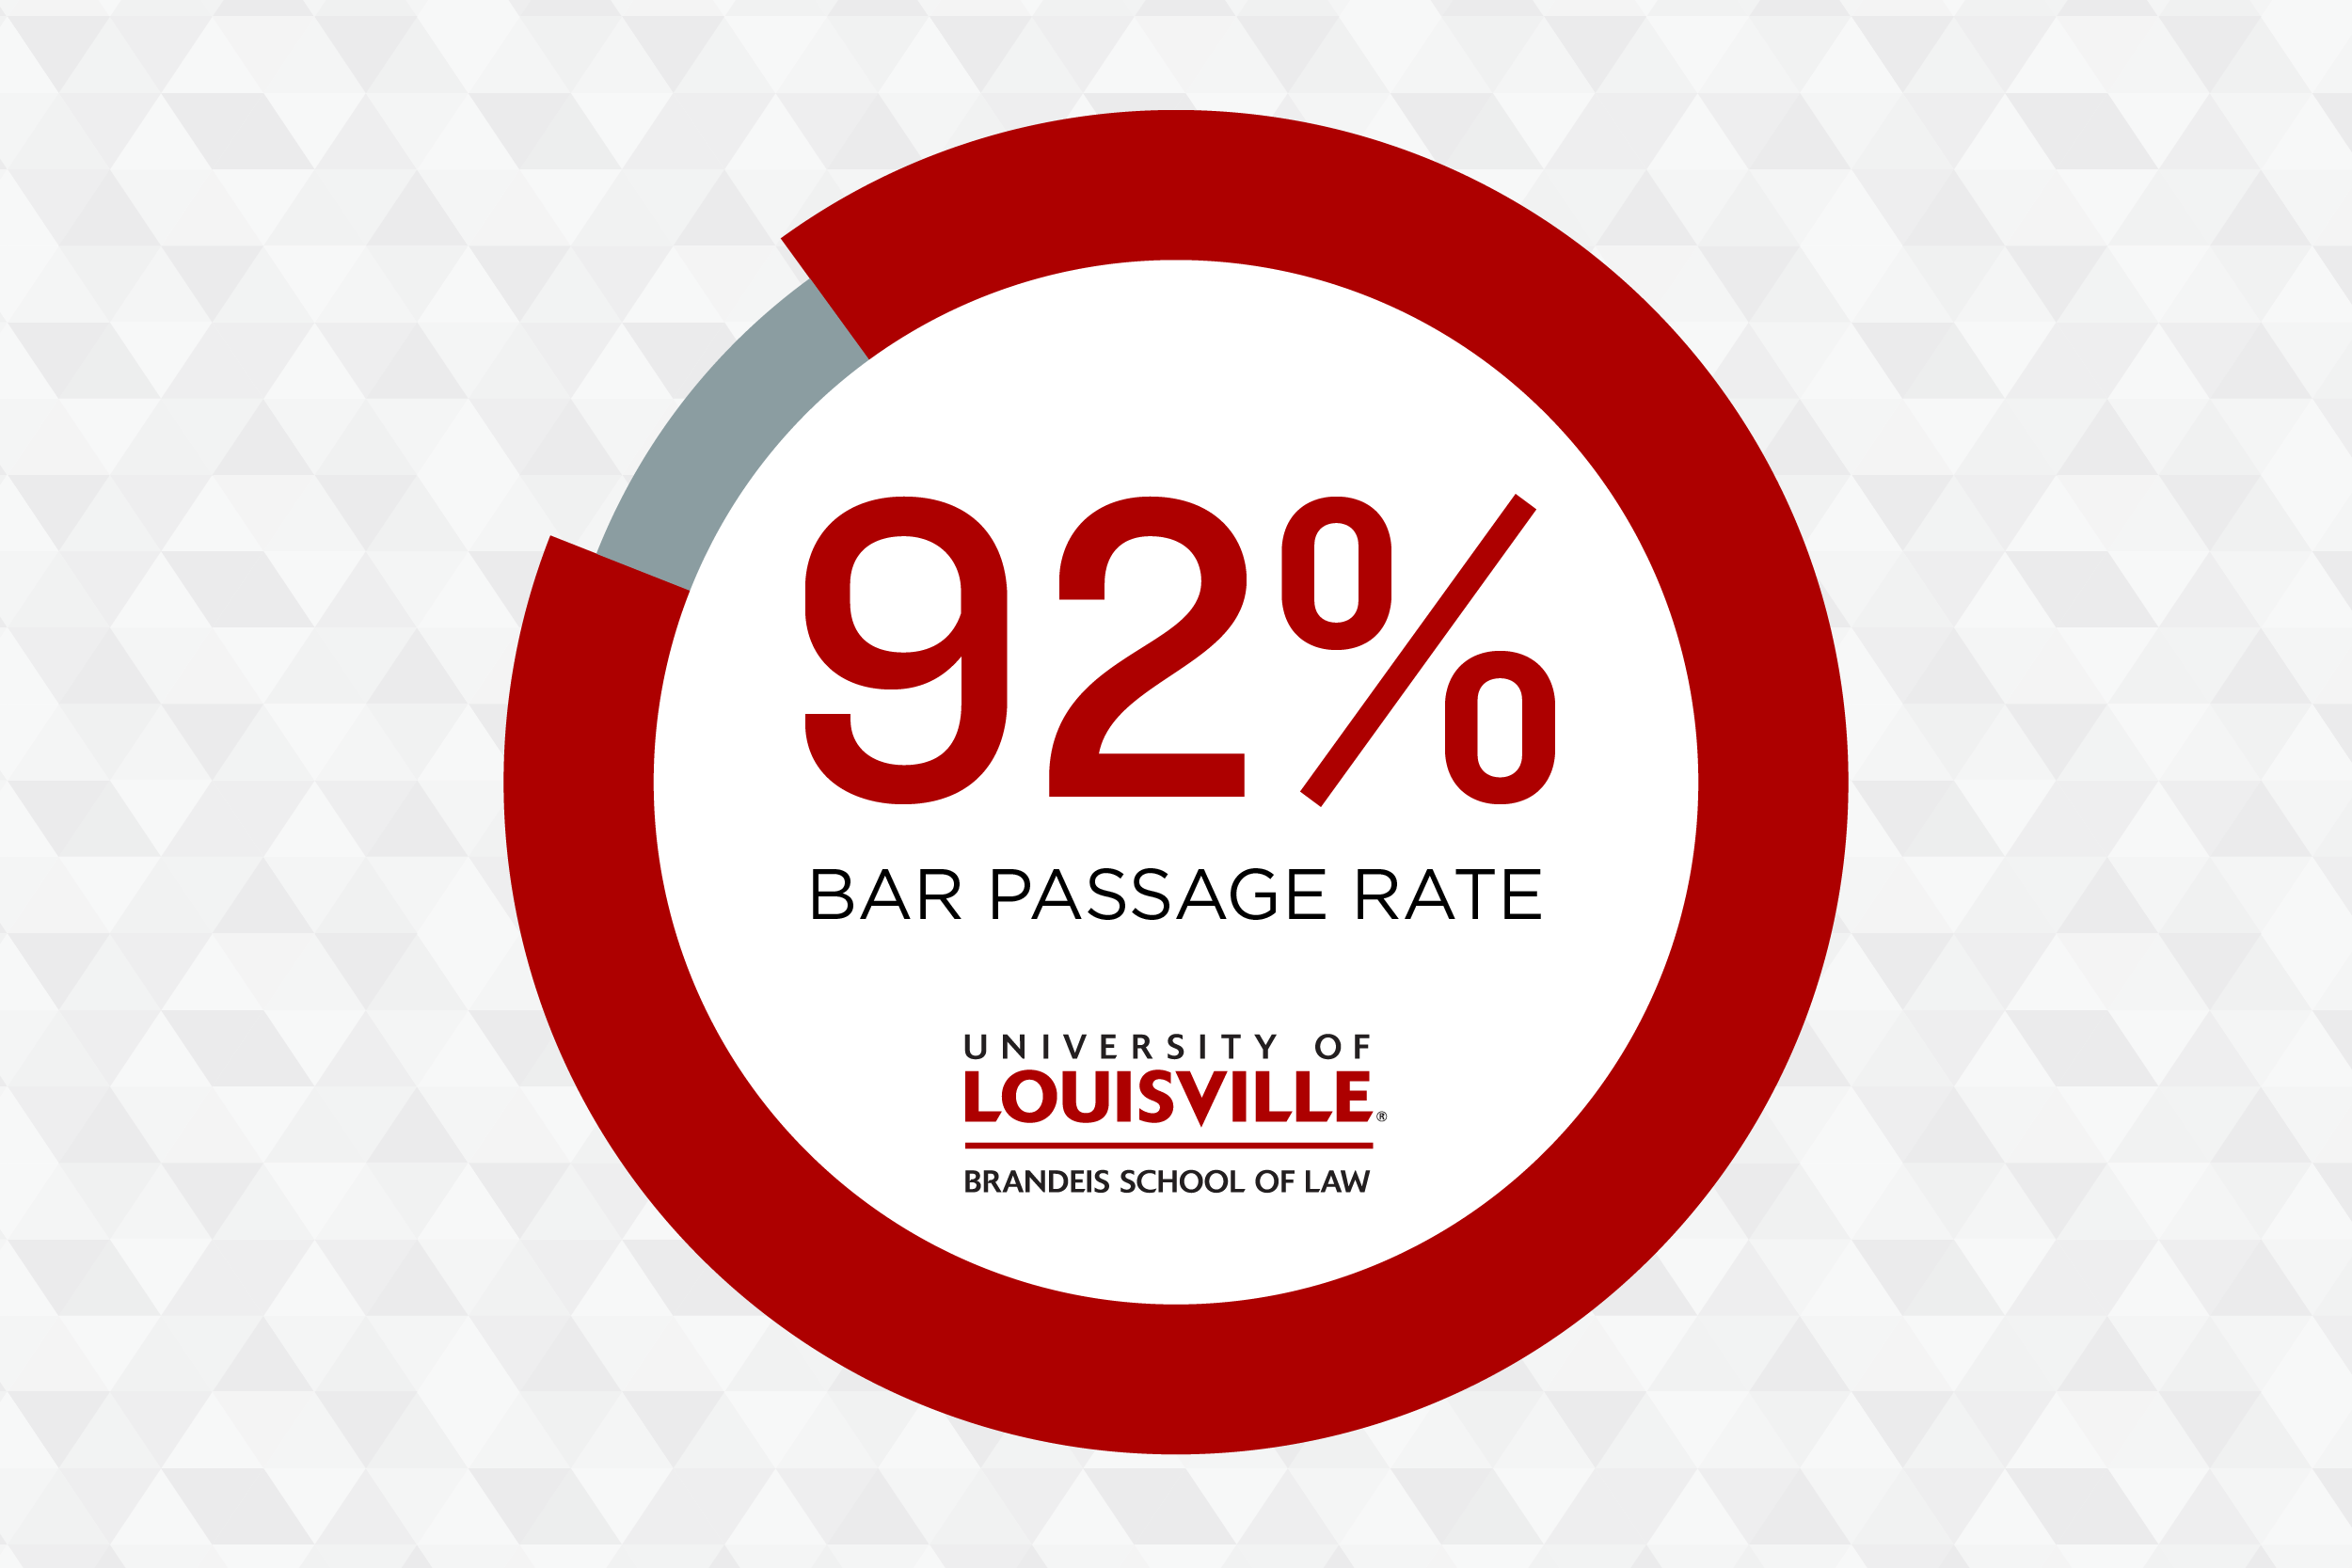 92% bar passage rate for first-time Louisville Law candidates on theFebruary 2019 Kentucky Bar Examination